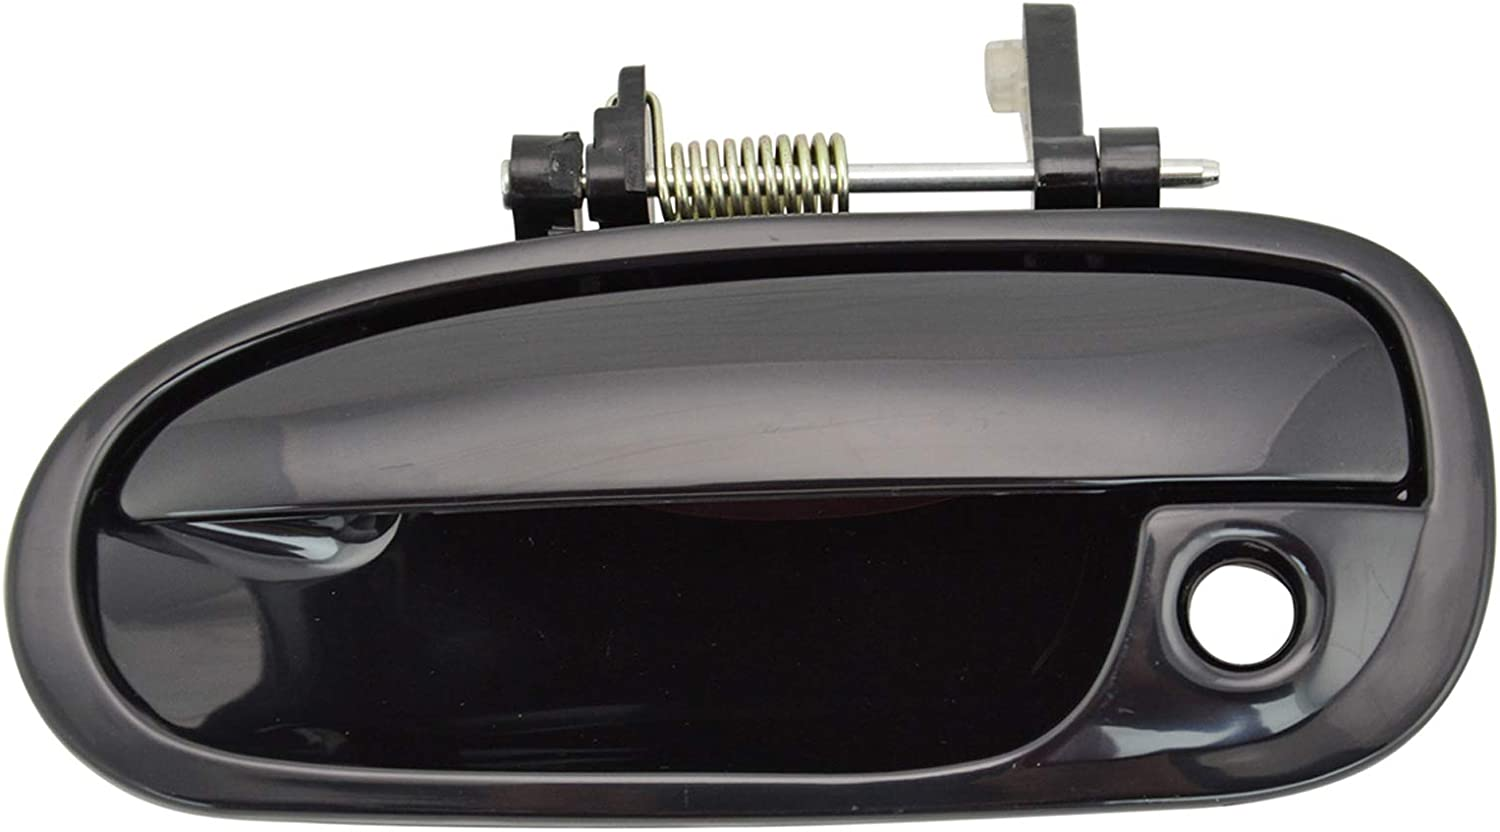 New Smooth Paintable Black Outside Door Handles FOR 1996-00 CIVIC 2-DOOR COUPE